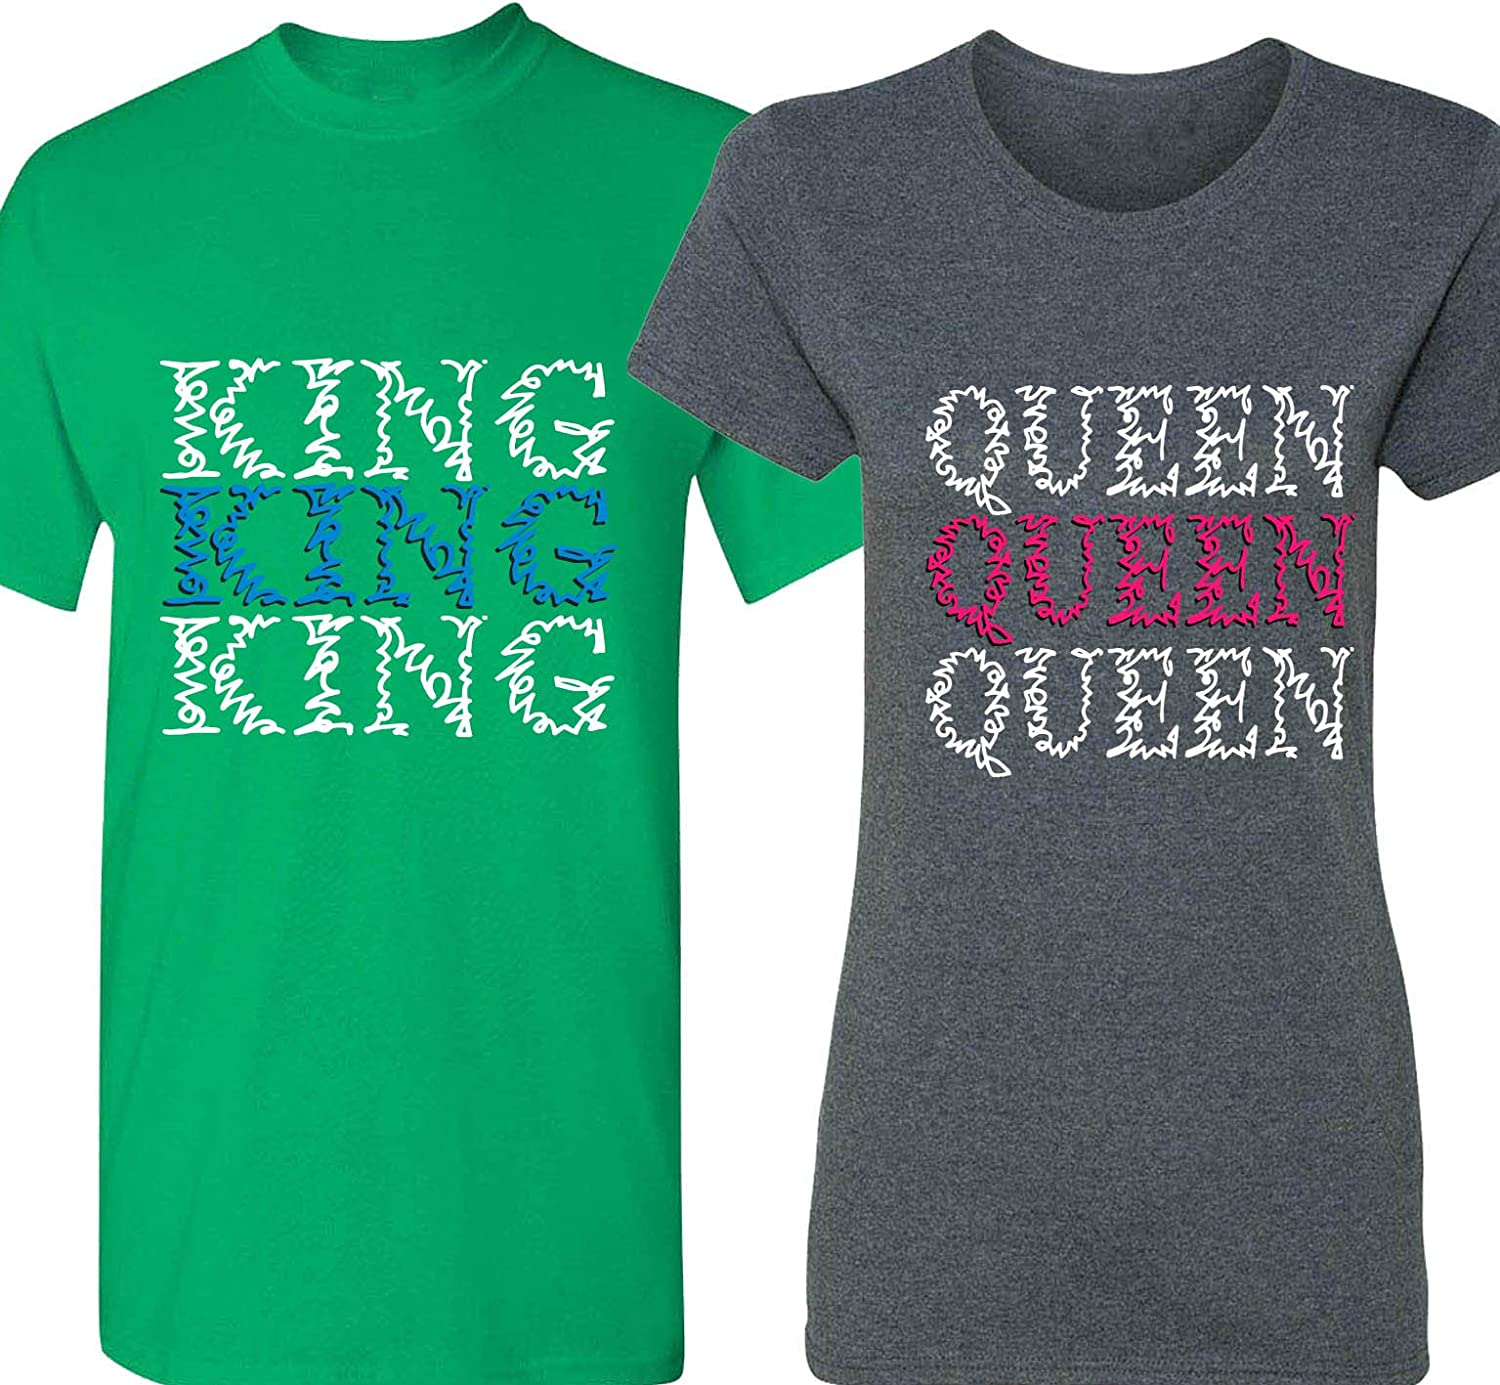 Amazon.com: King & Queen - Matching Couple Shirts - His and ...